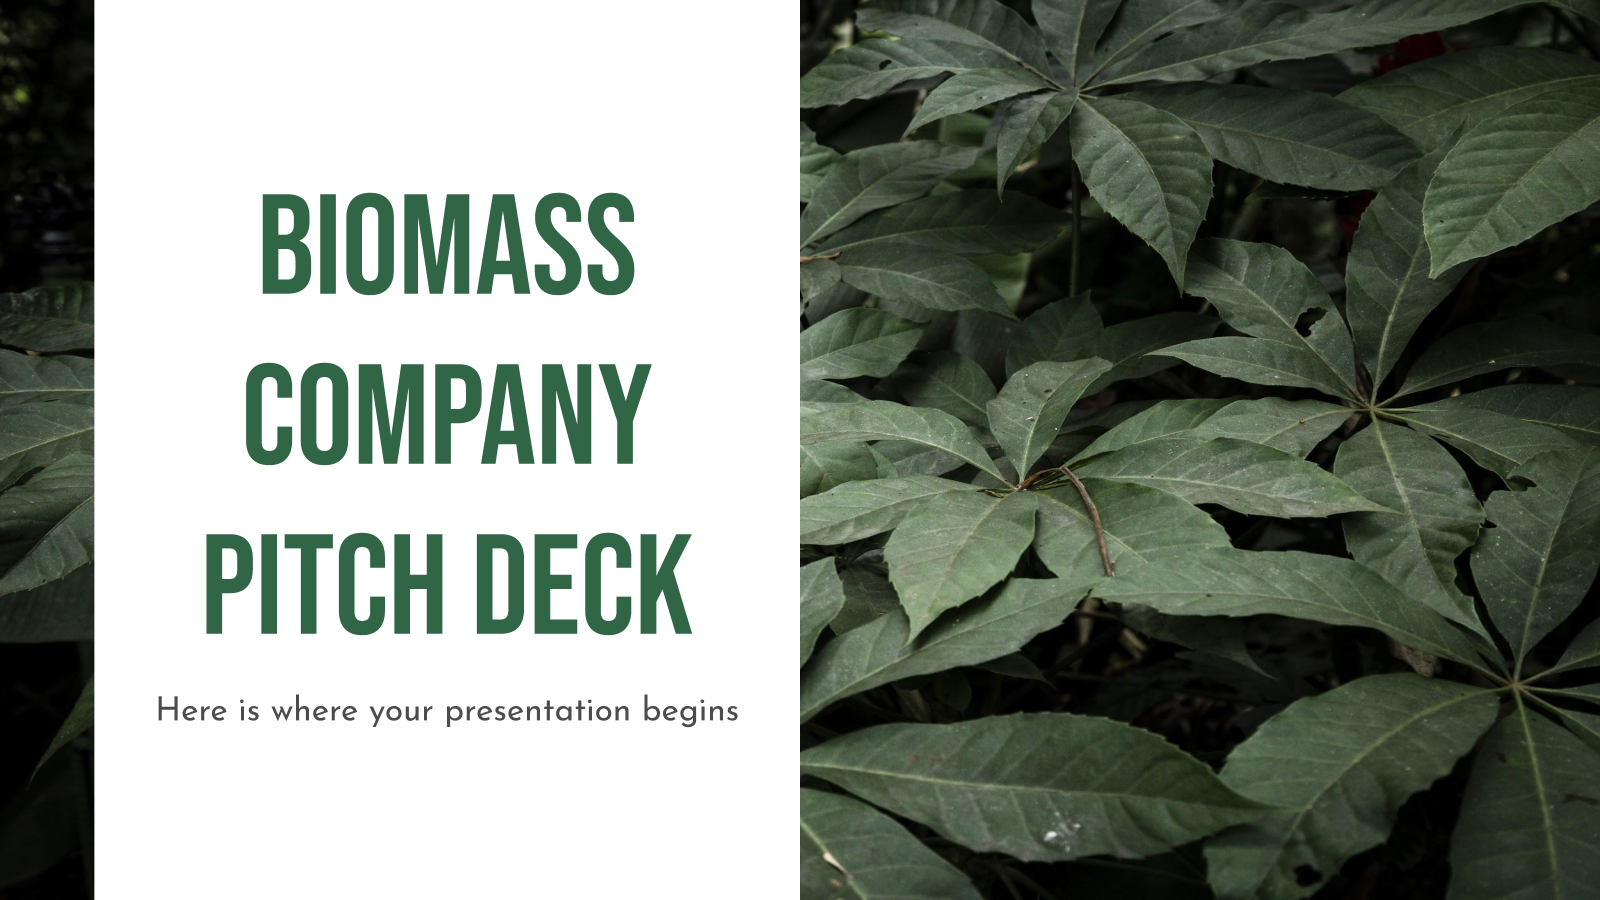 Biomass Company Pitch Deck presentation template